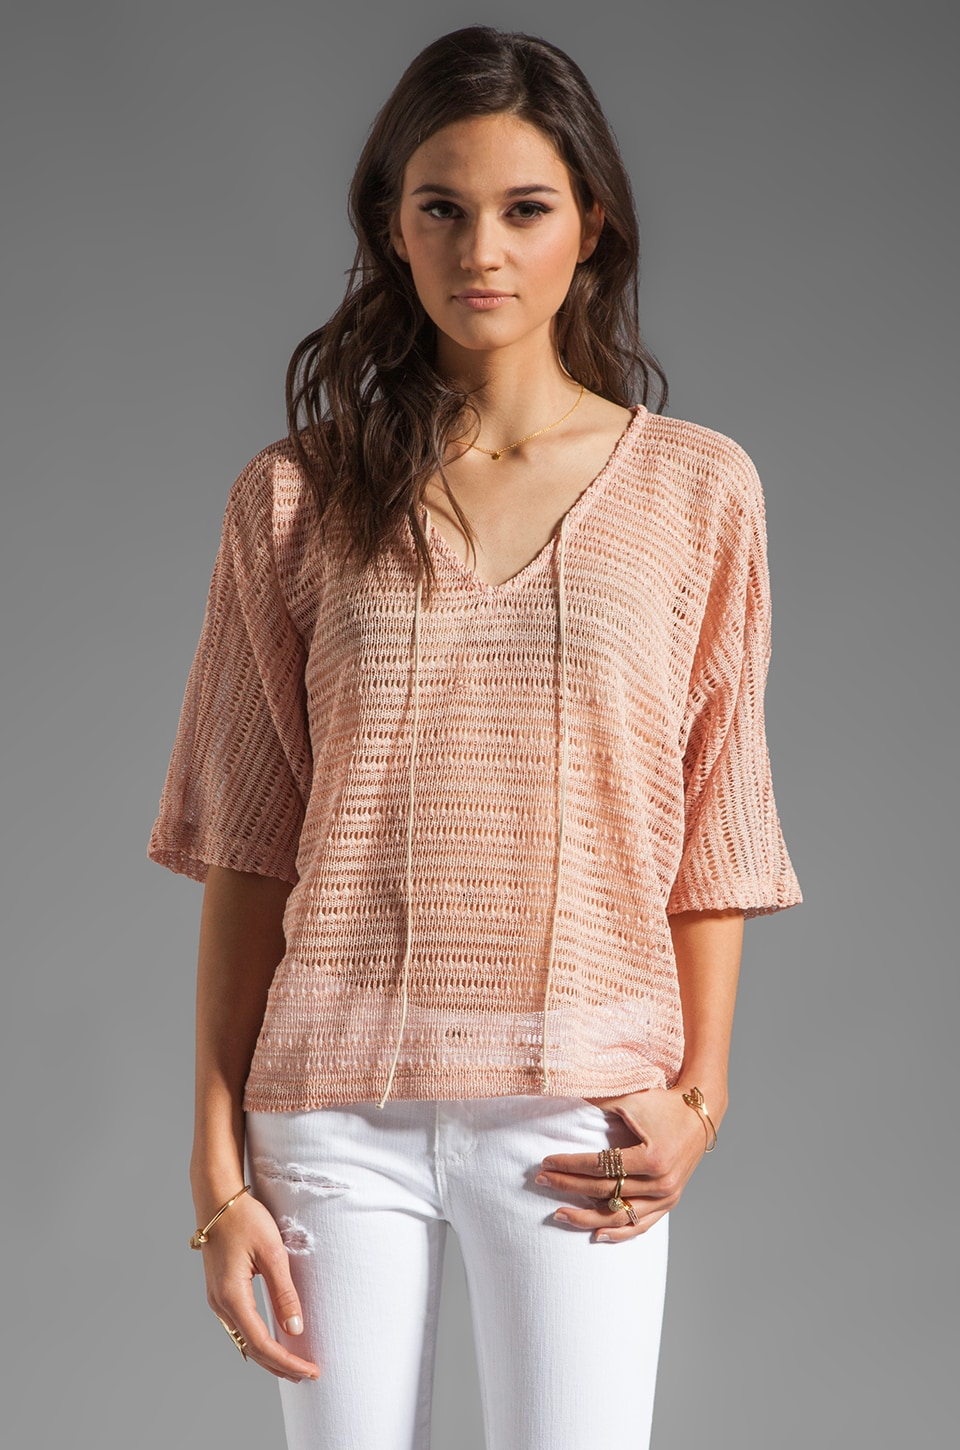 Sanctuary Blanket Tee in Savanna Stripe